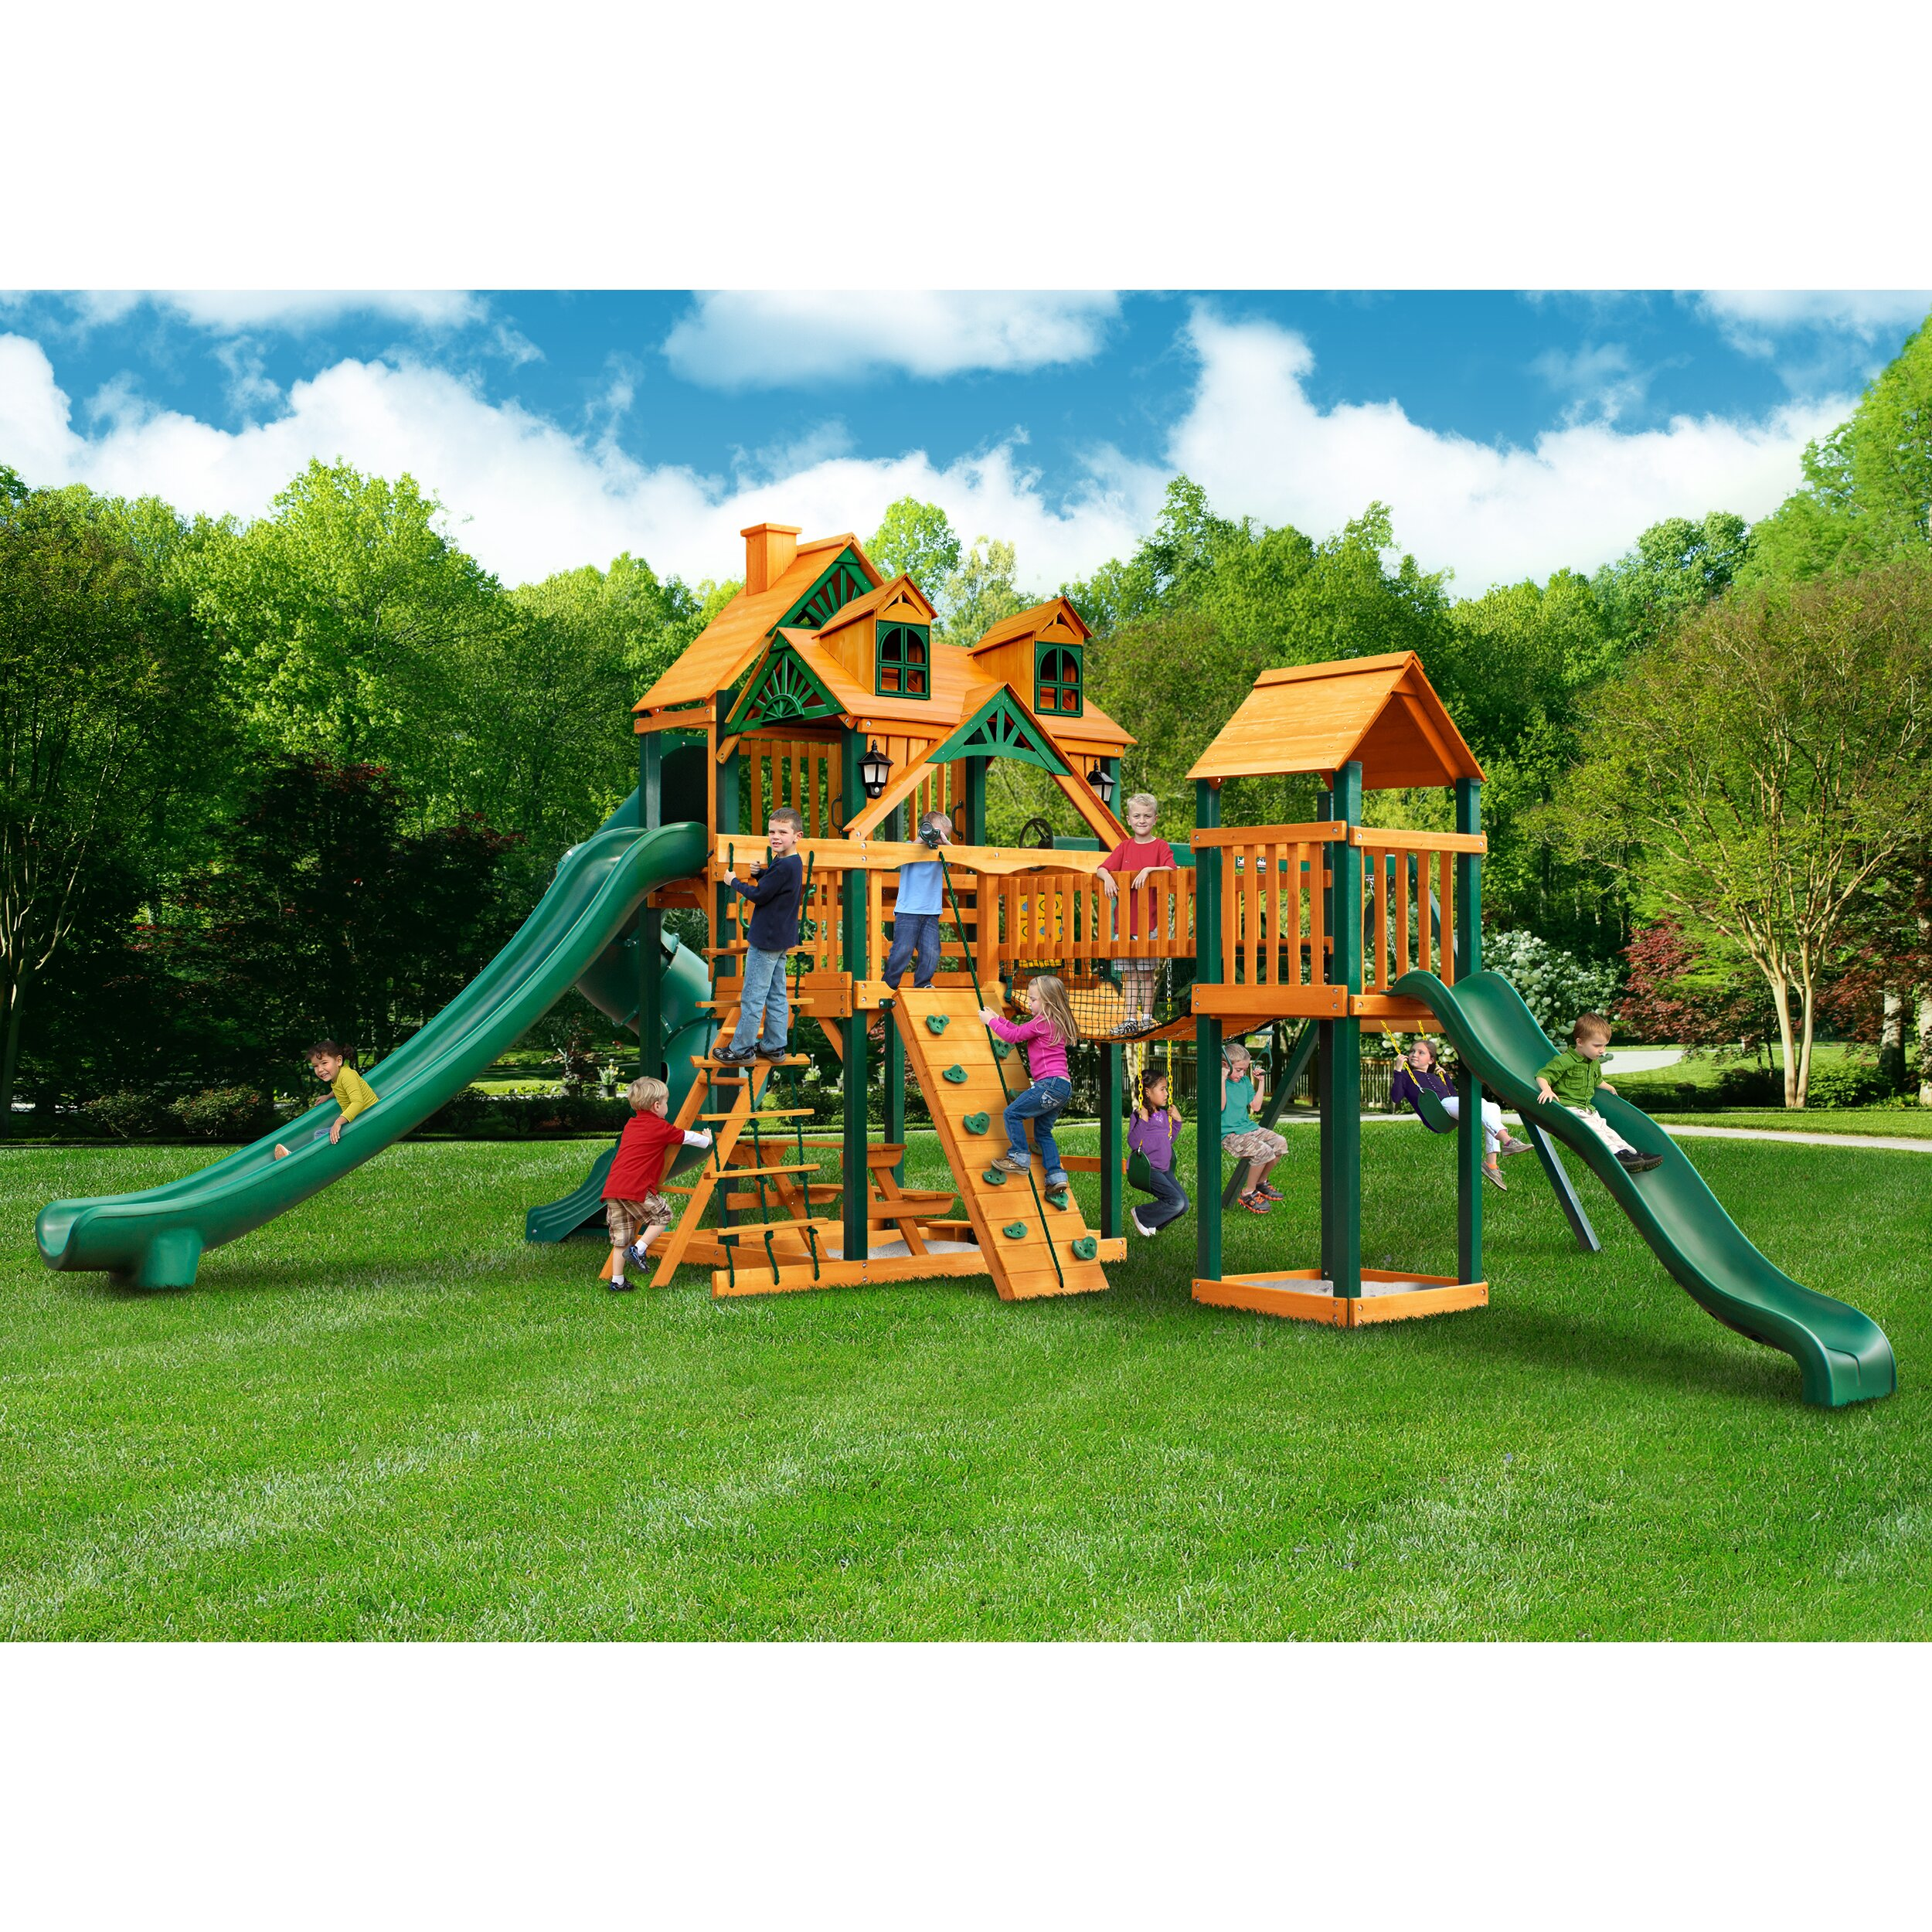 Gorilla Playsets Malibu Treasure Trove Ii Swing Set Wayfair